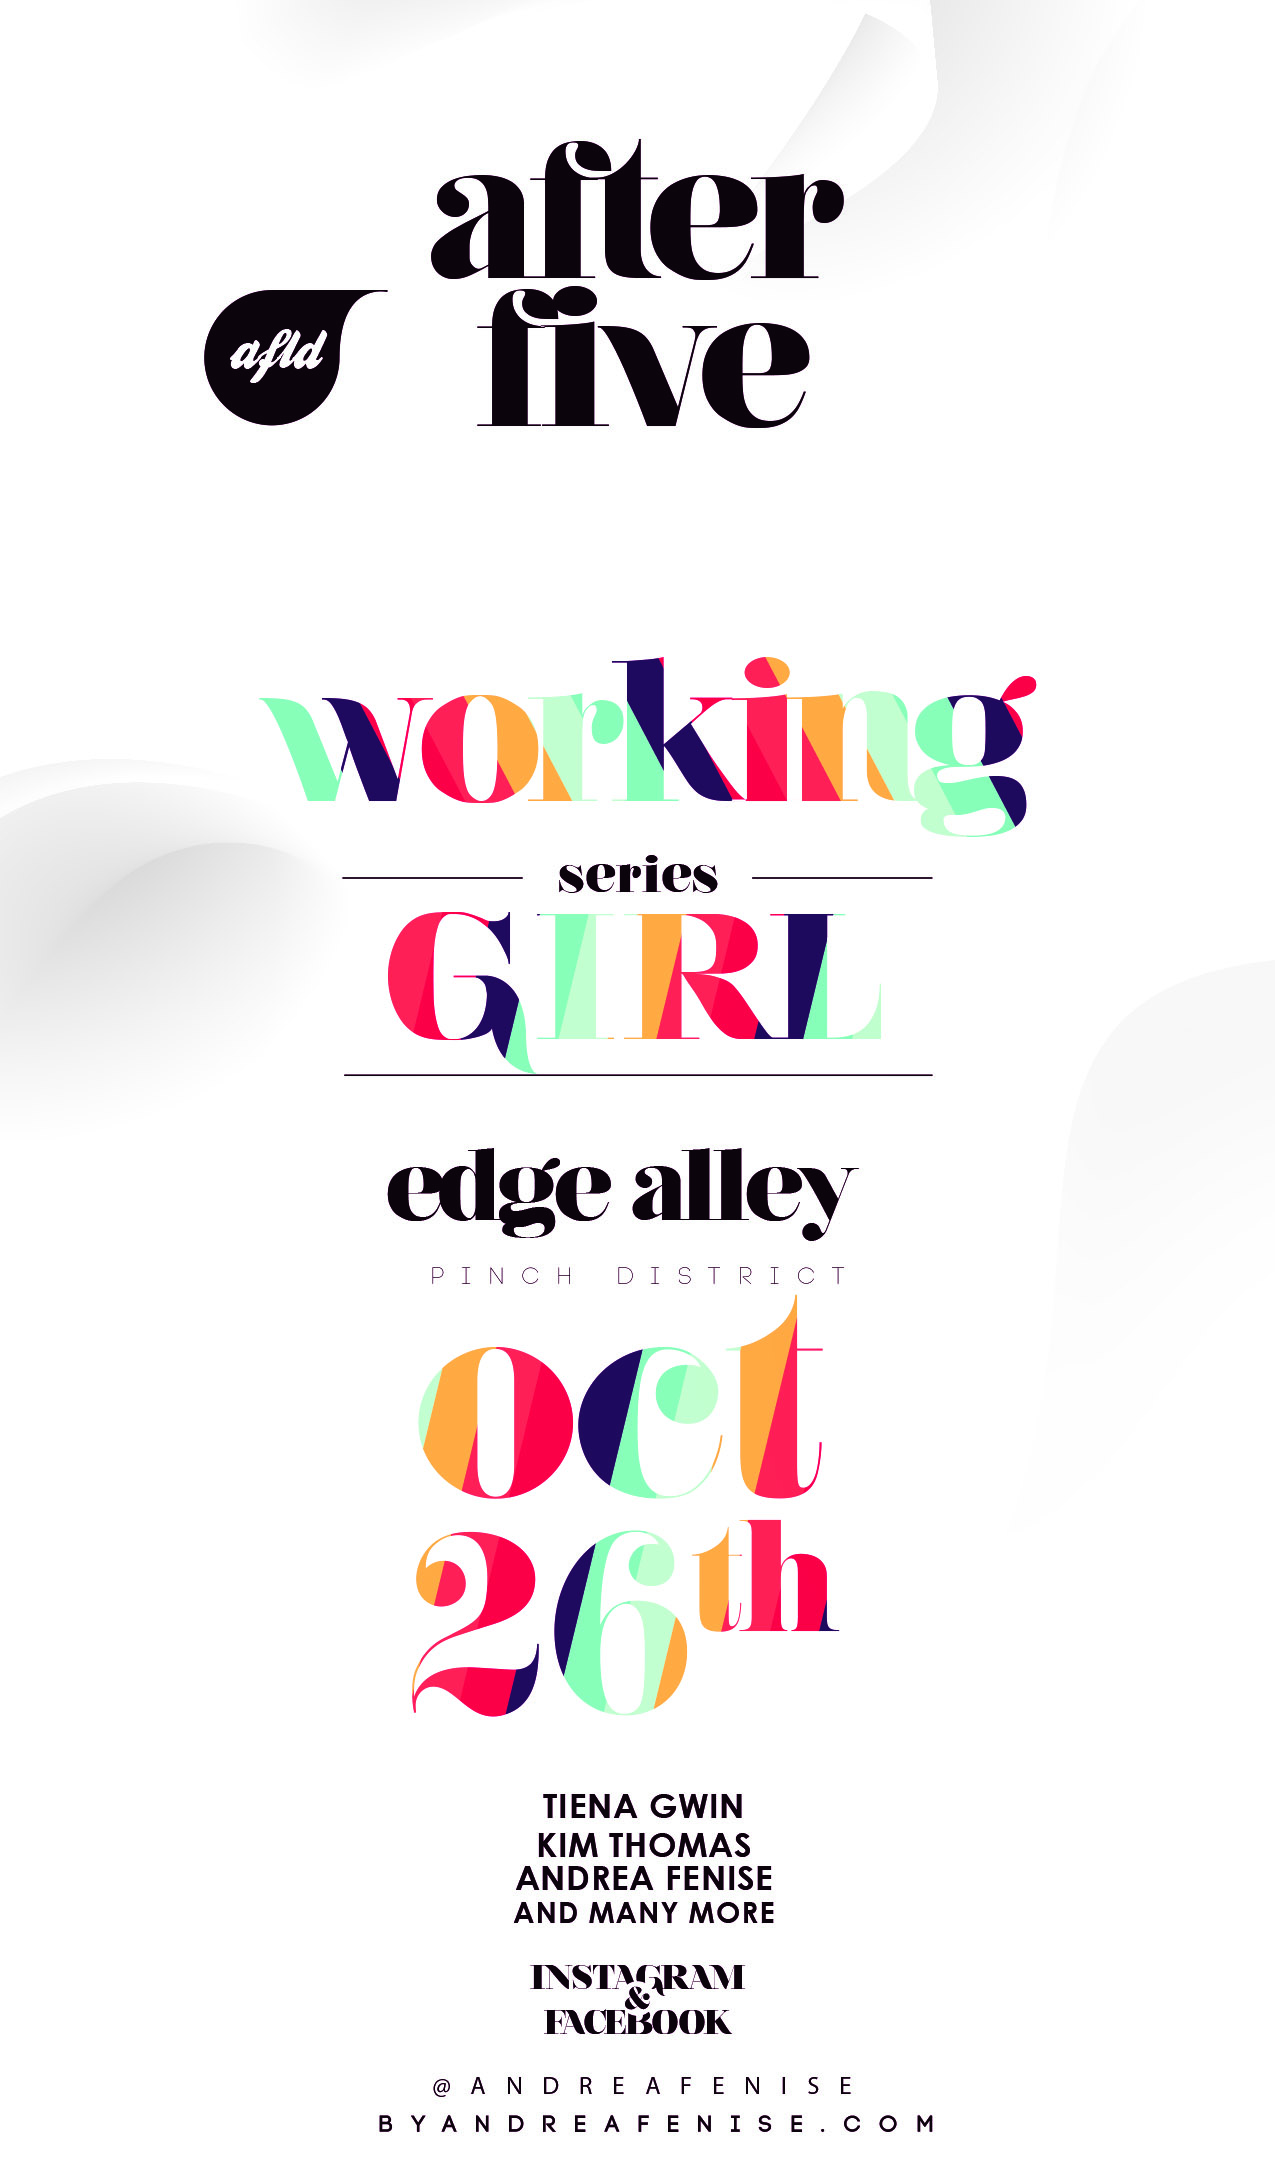 Andrea Fenise Memphis Fashion Blogger shares The Working Girl series